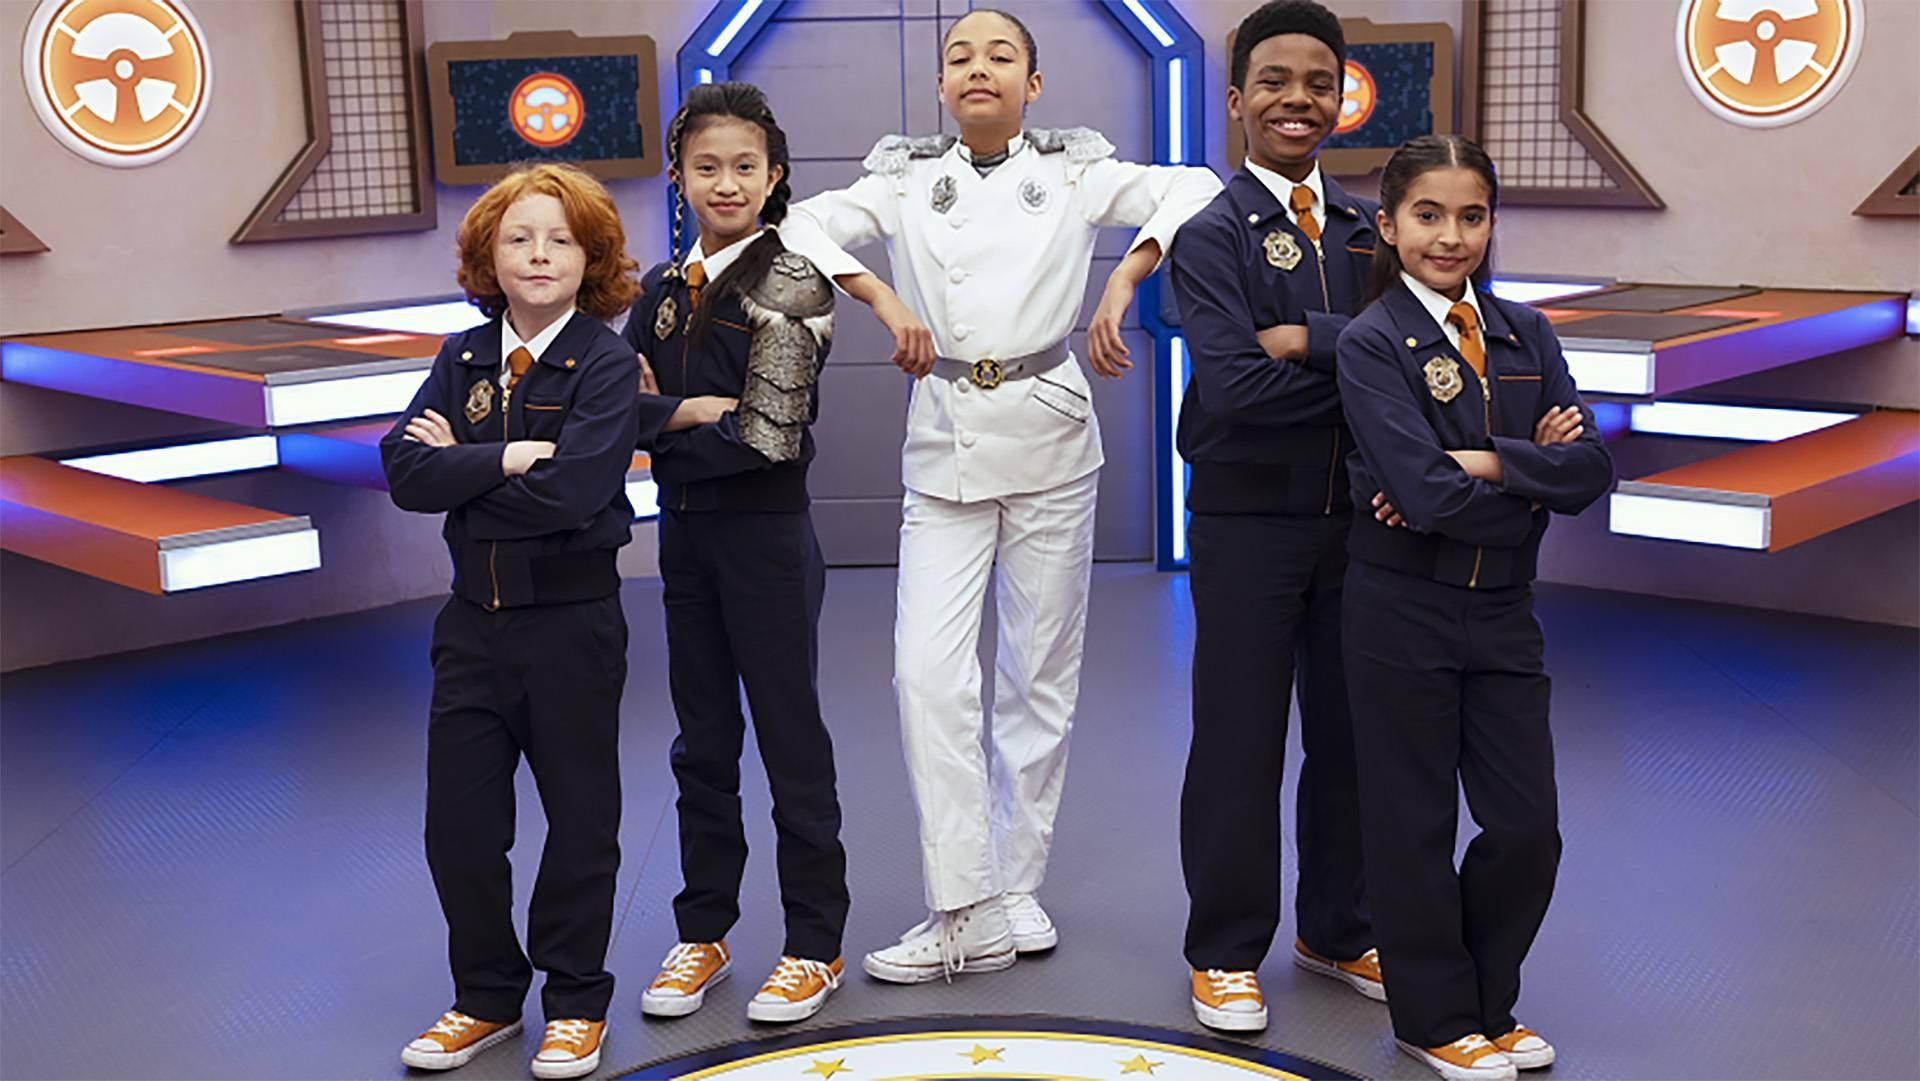 The Odd Squad returns with new episodes